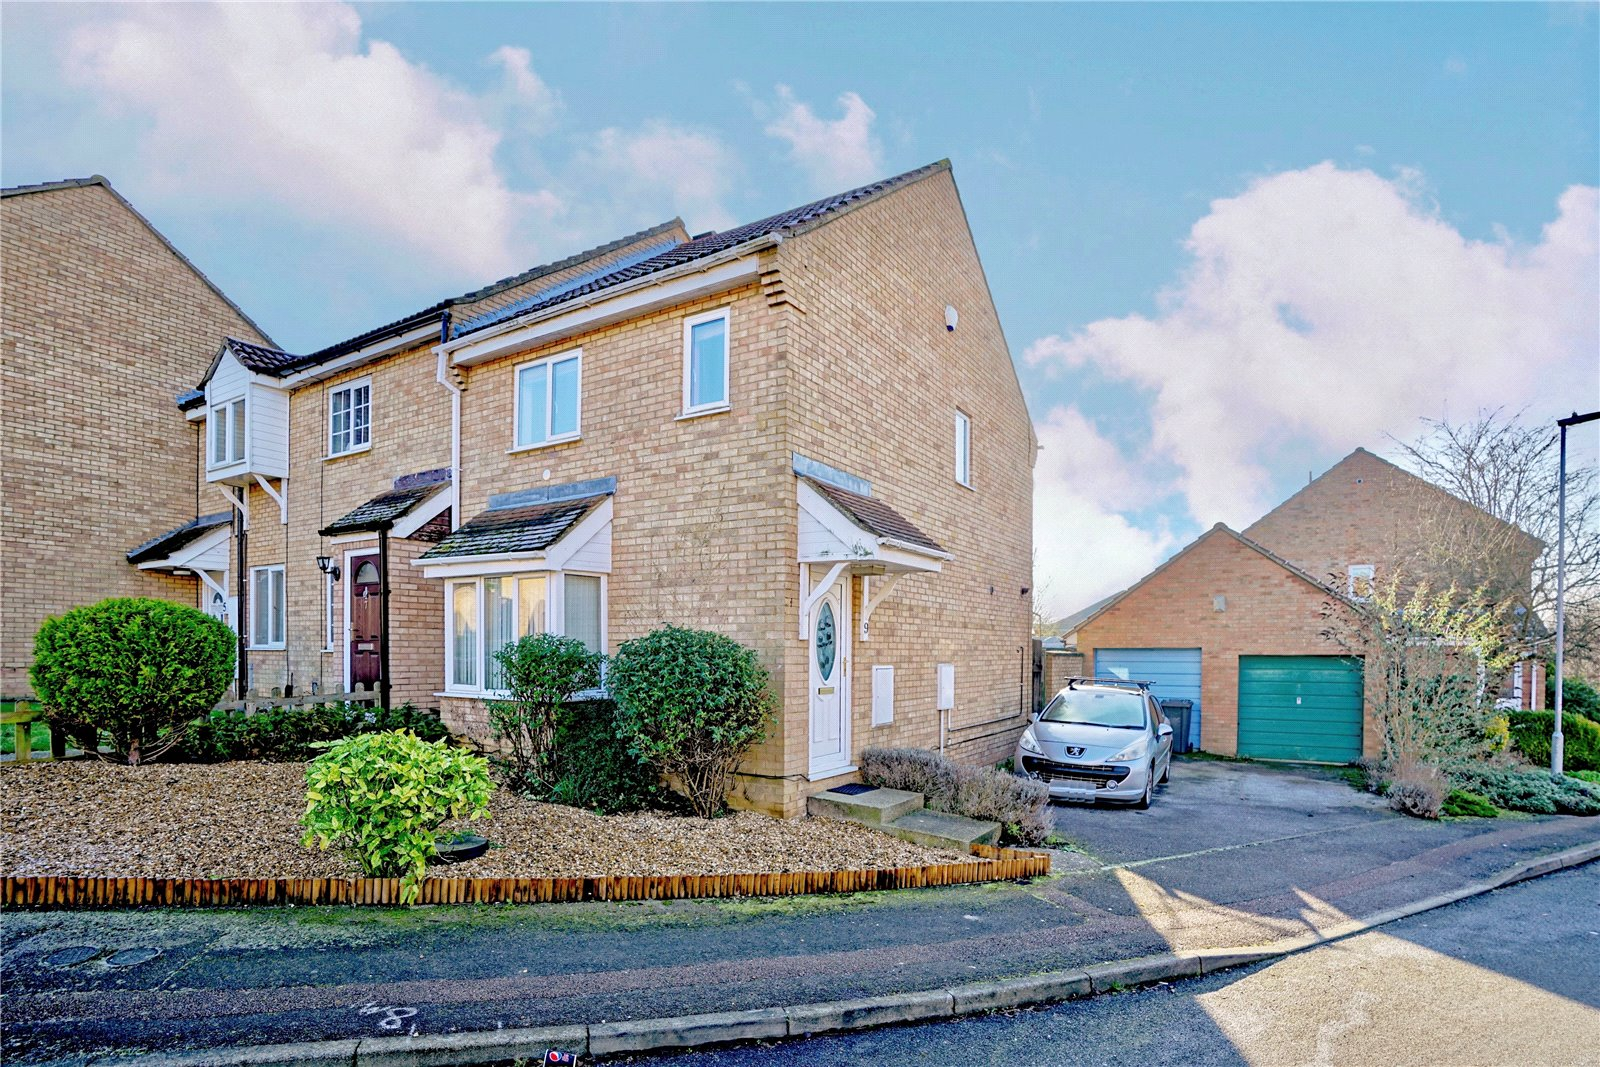 3 bed house for sale in Muntjac Close, Eaton Socon, PE19